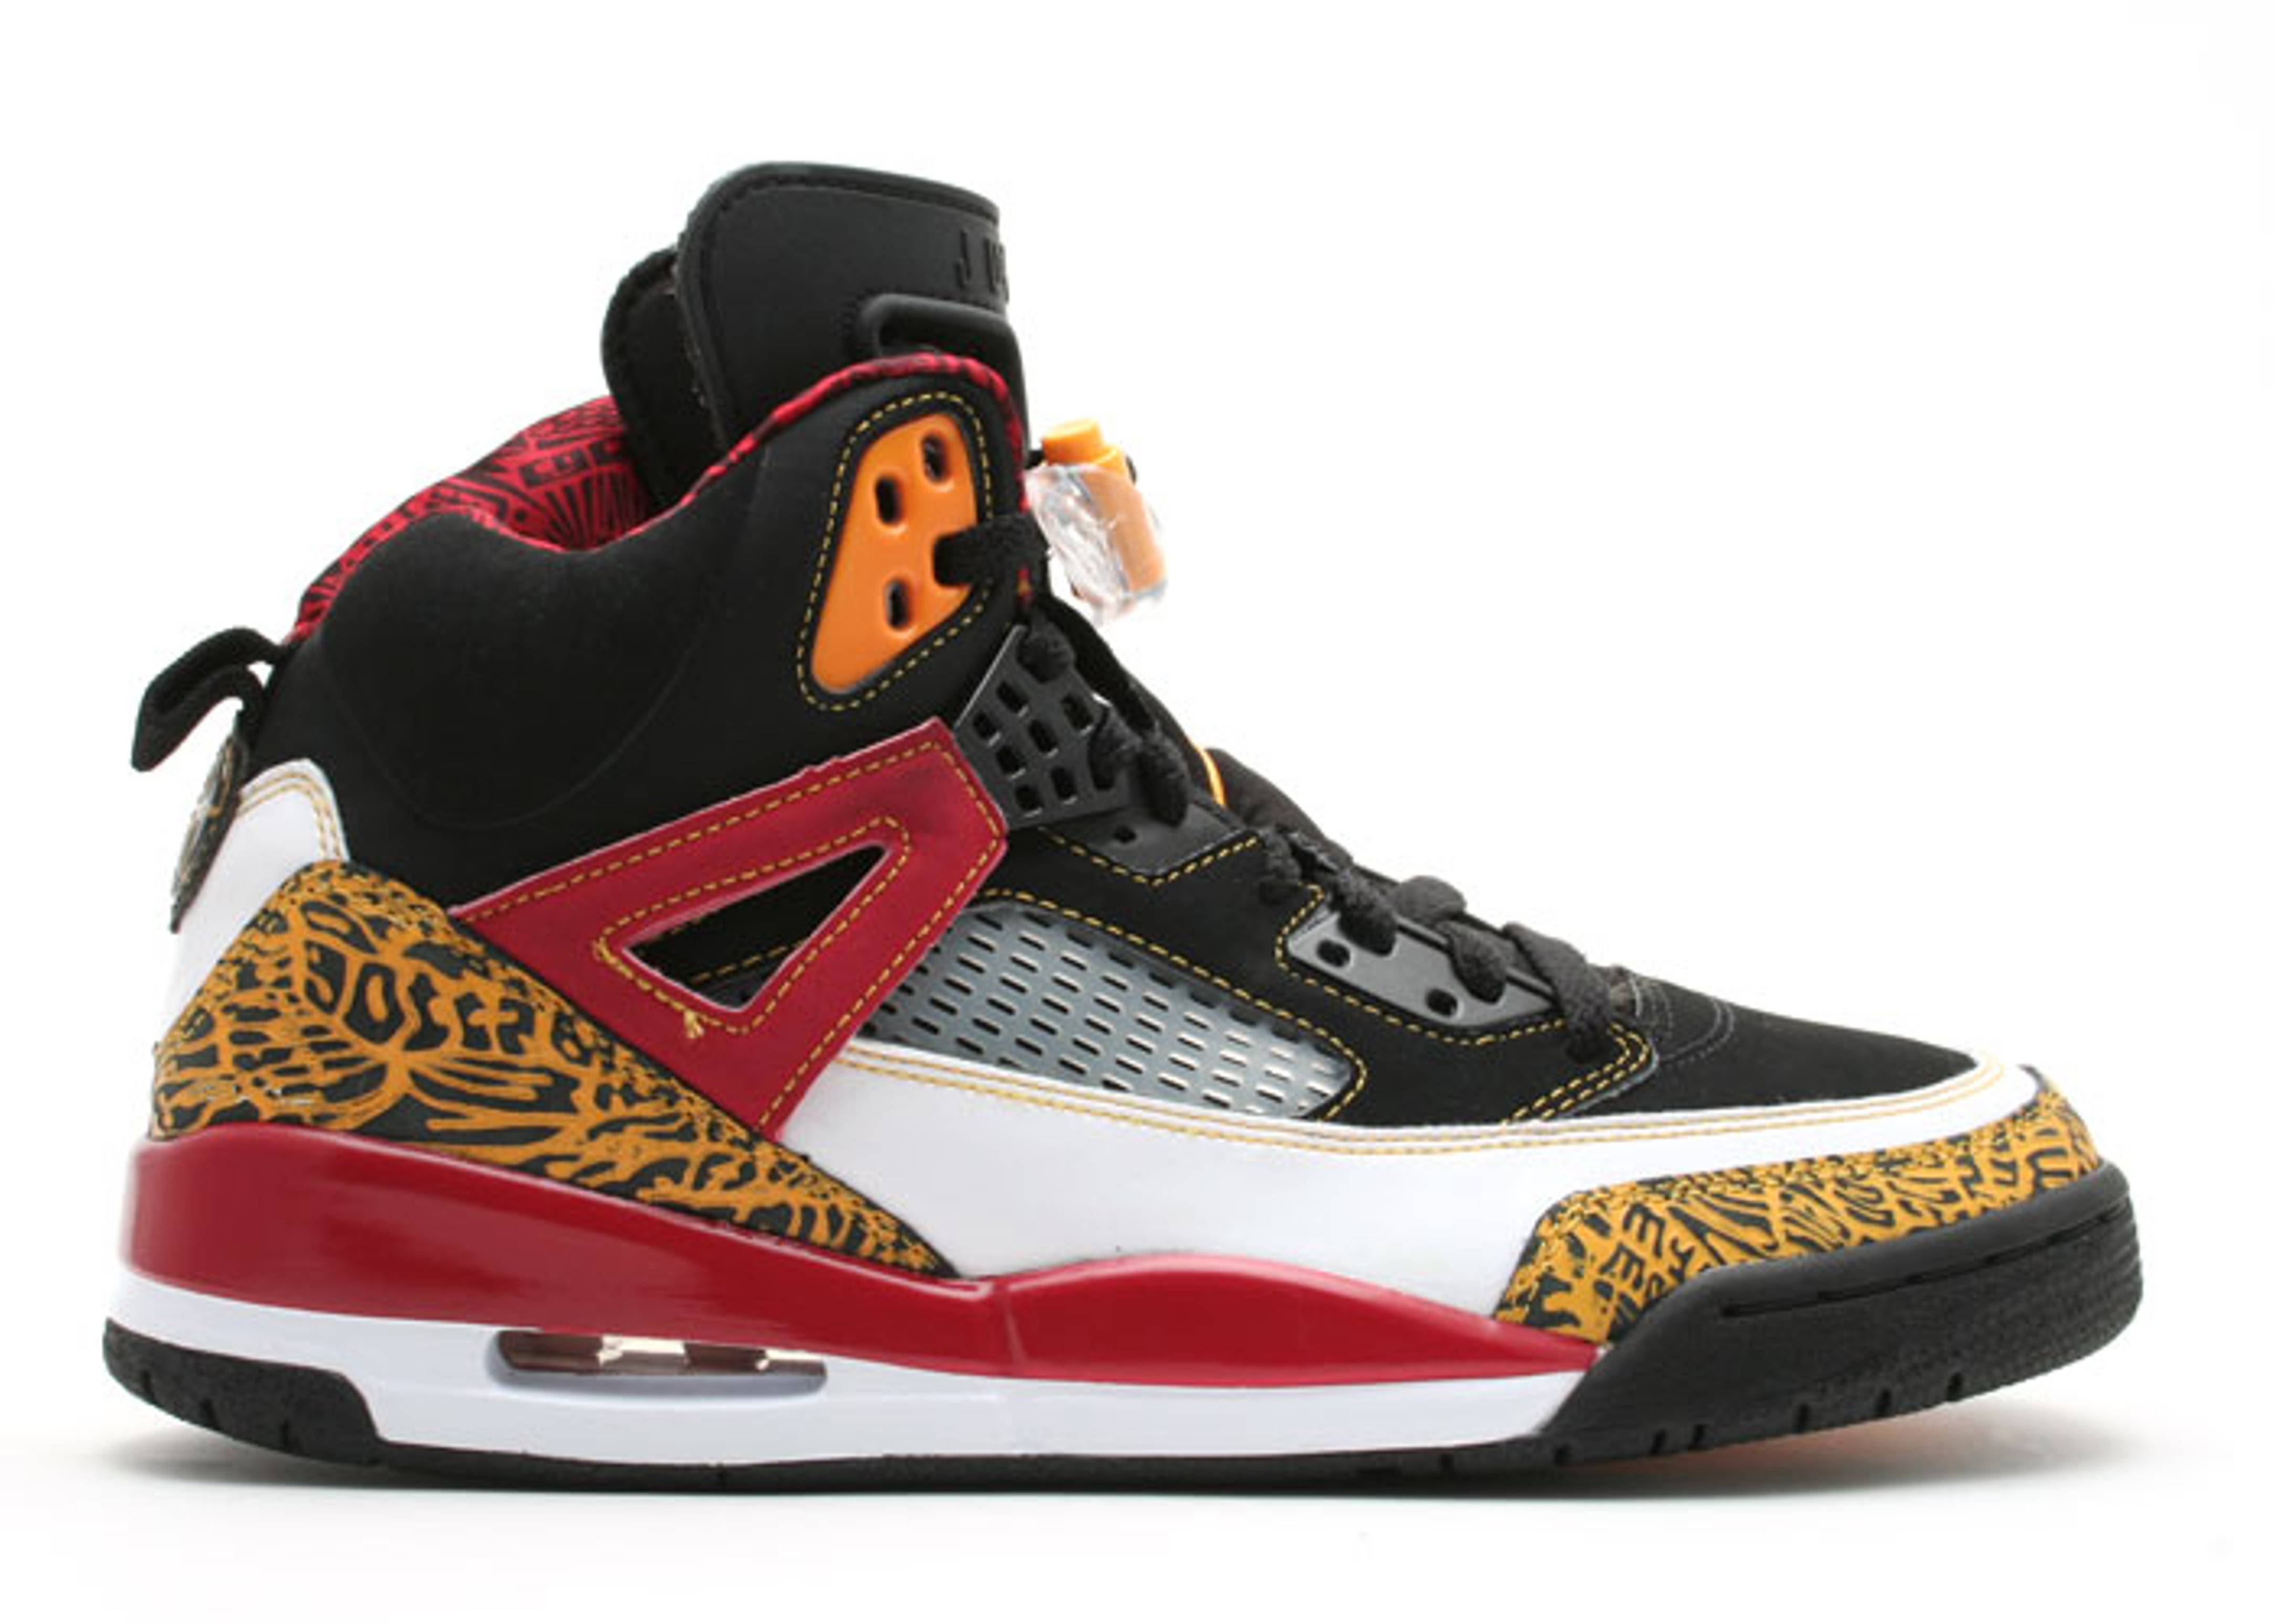 new product f46b4 d1995 jordan spiz ike